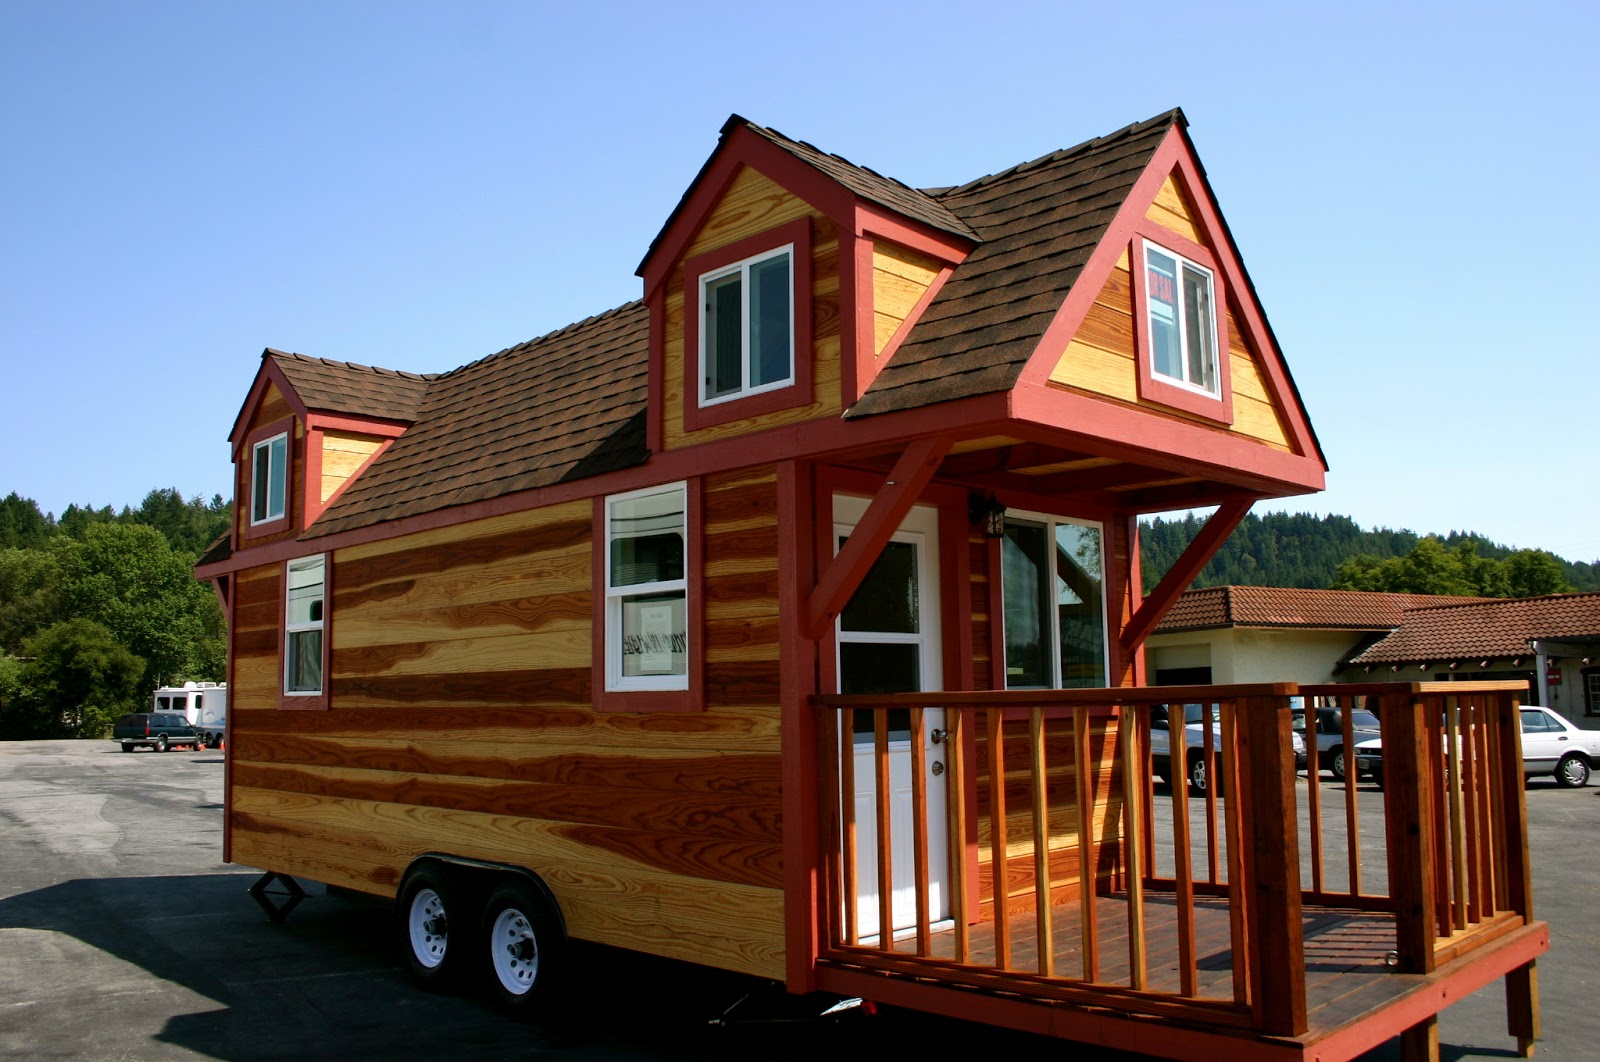 Redwood tinyhouse tiny house giant journey for Small new build homes